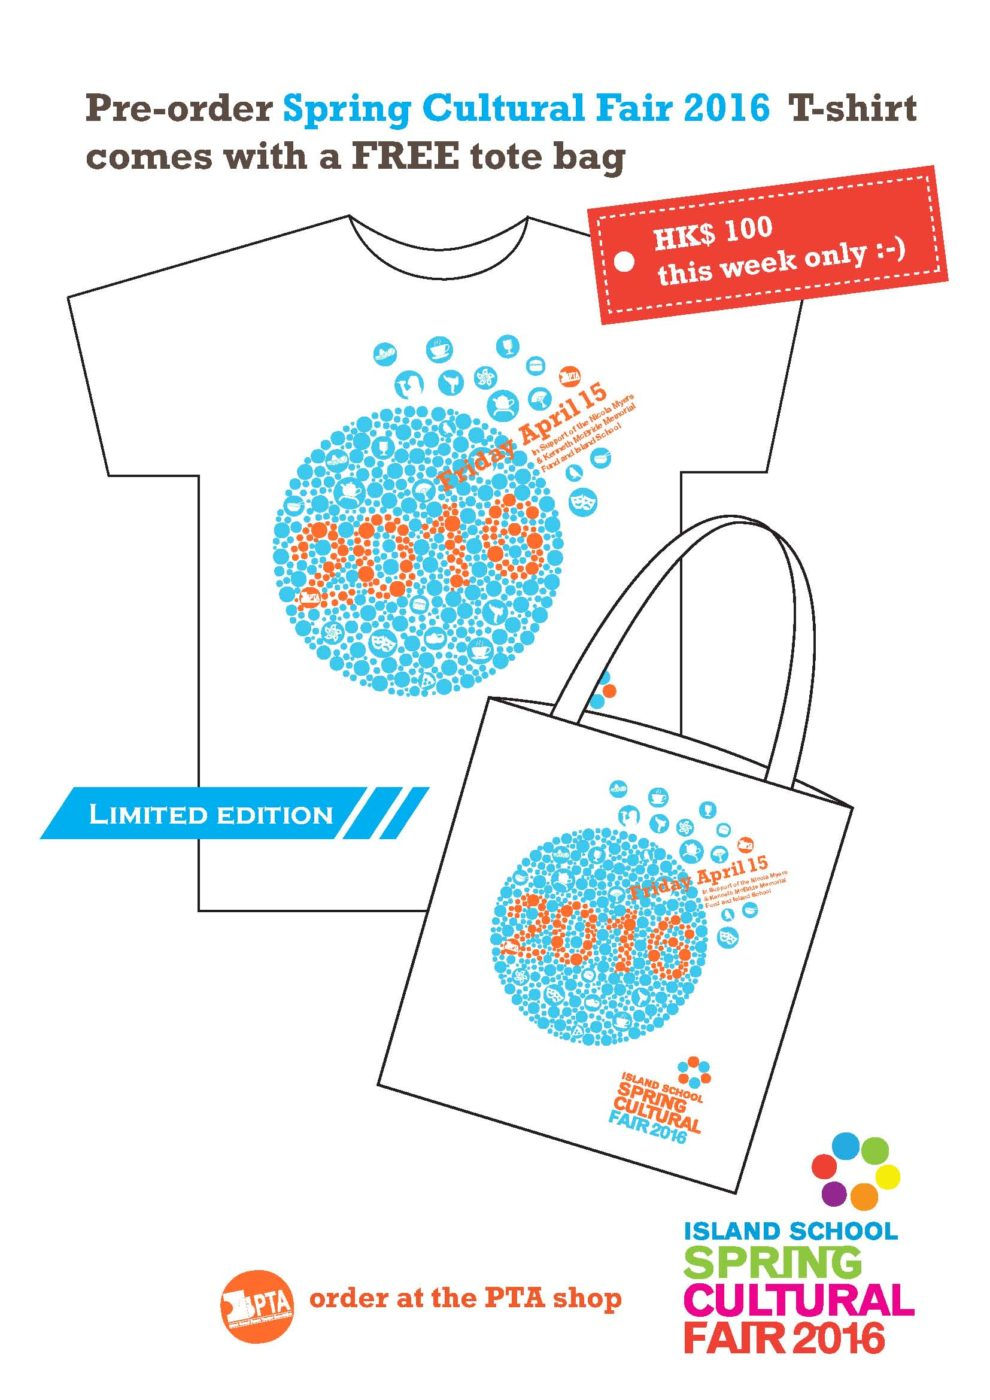 IS 2016 Spring Fair t-shirt FINAL2_Page_1